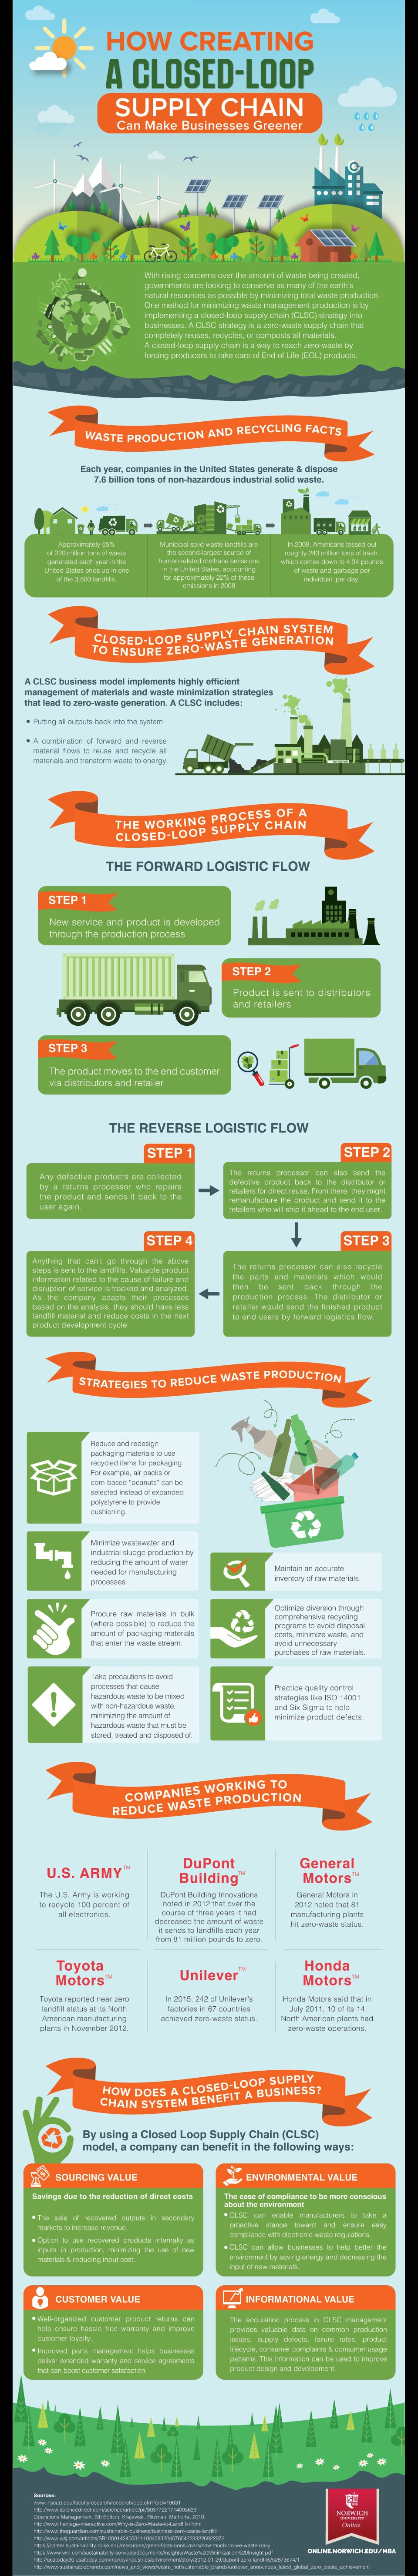 closed loop supply chain infographic image